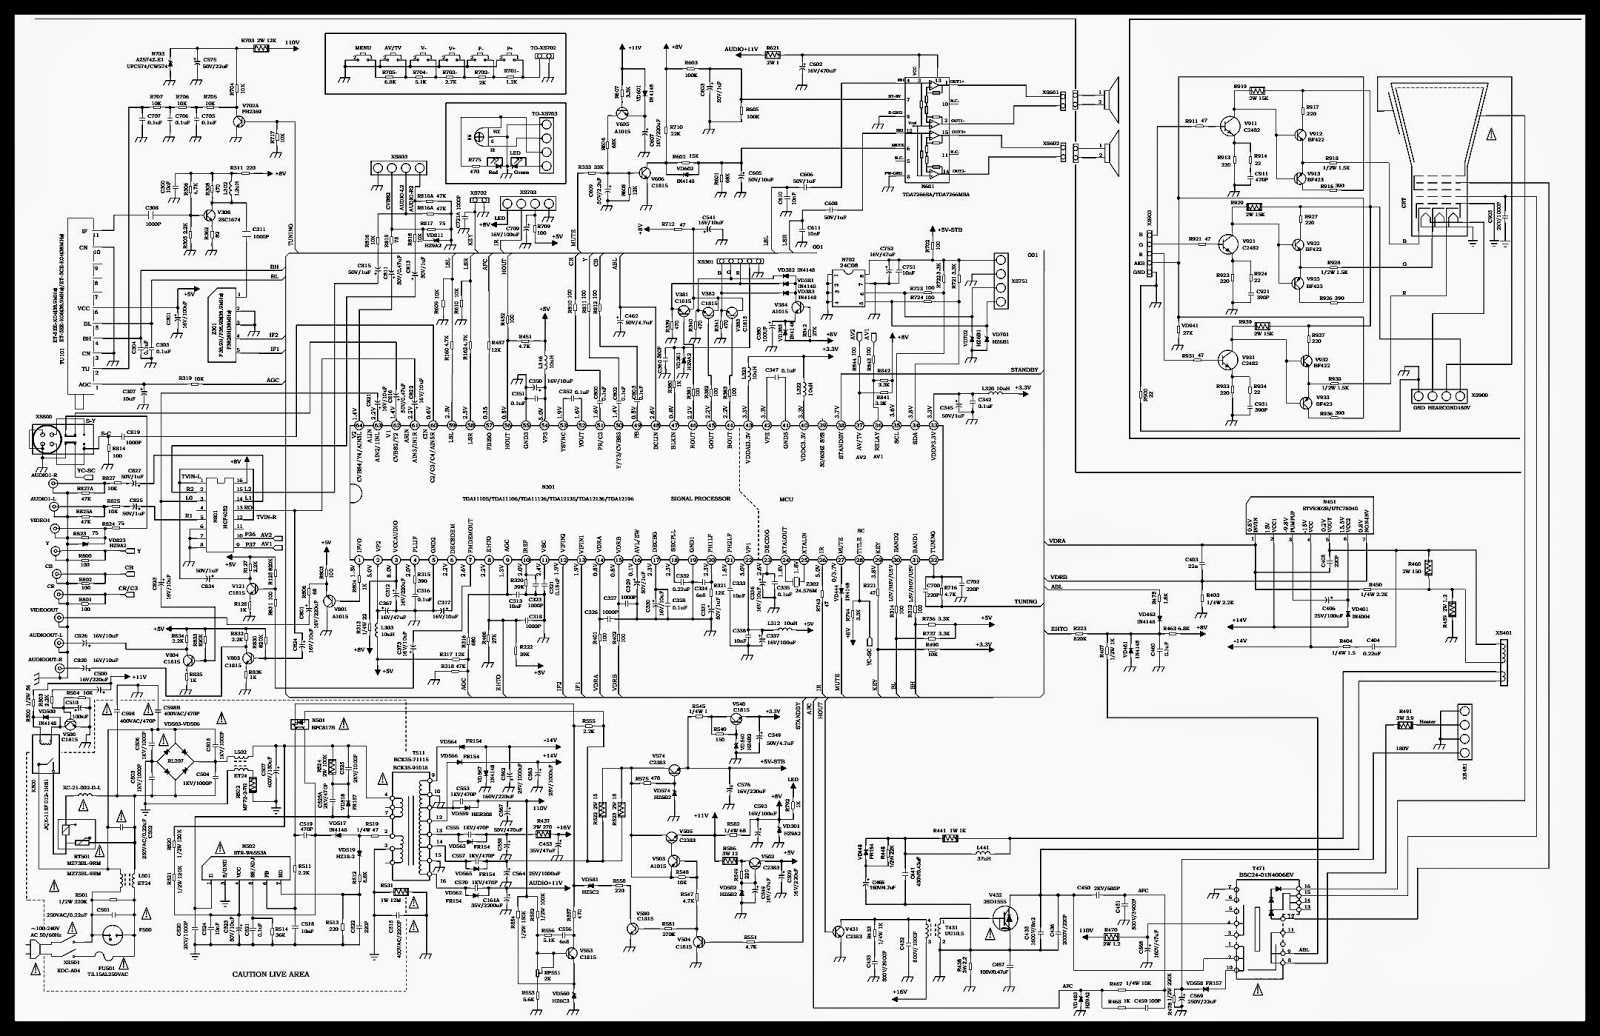 Magnavox Tv Schematic Diagrams Wiring Speaker Diagram And Fuse Box Delco Radio Repair